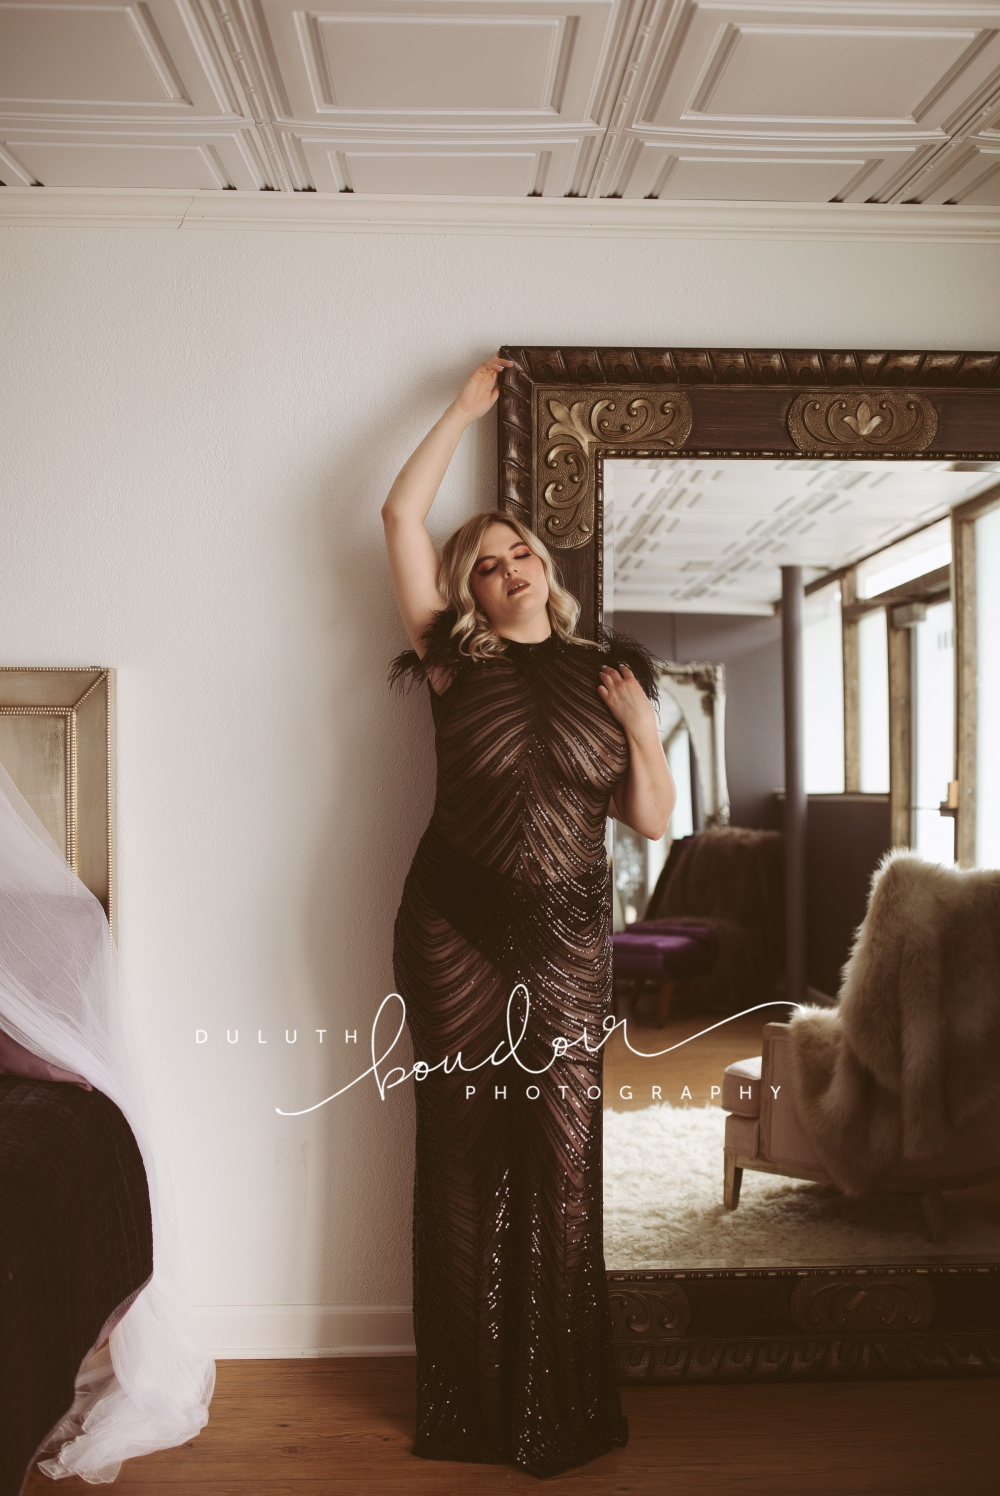 Duluth Boudoir Interview with the one and only GRACE — Mad Chicken Studio Boudoir  #duluthboudoir #duluthboudoirphotography #madchickenstudio #madchickenstudioboudoir #boudoirphotography